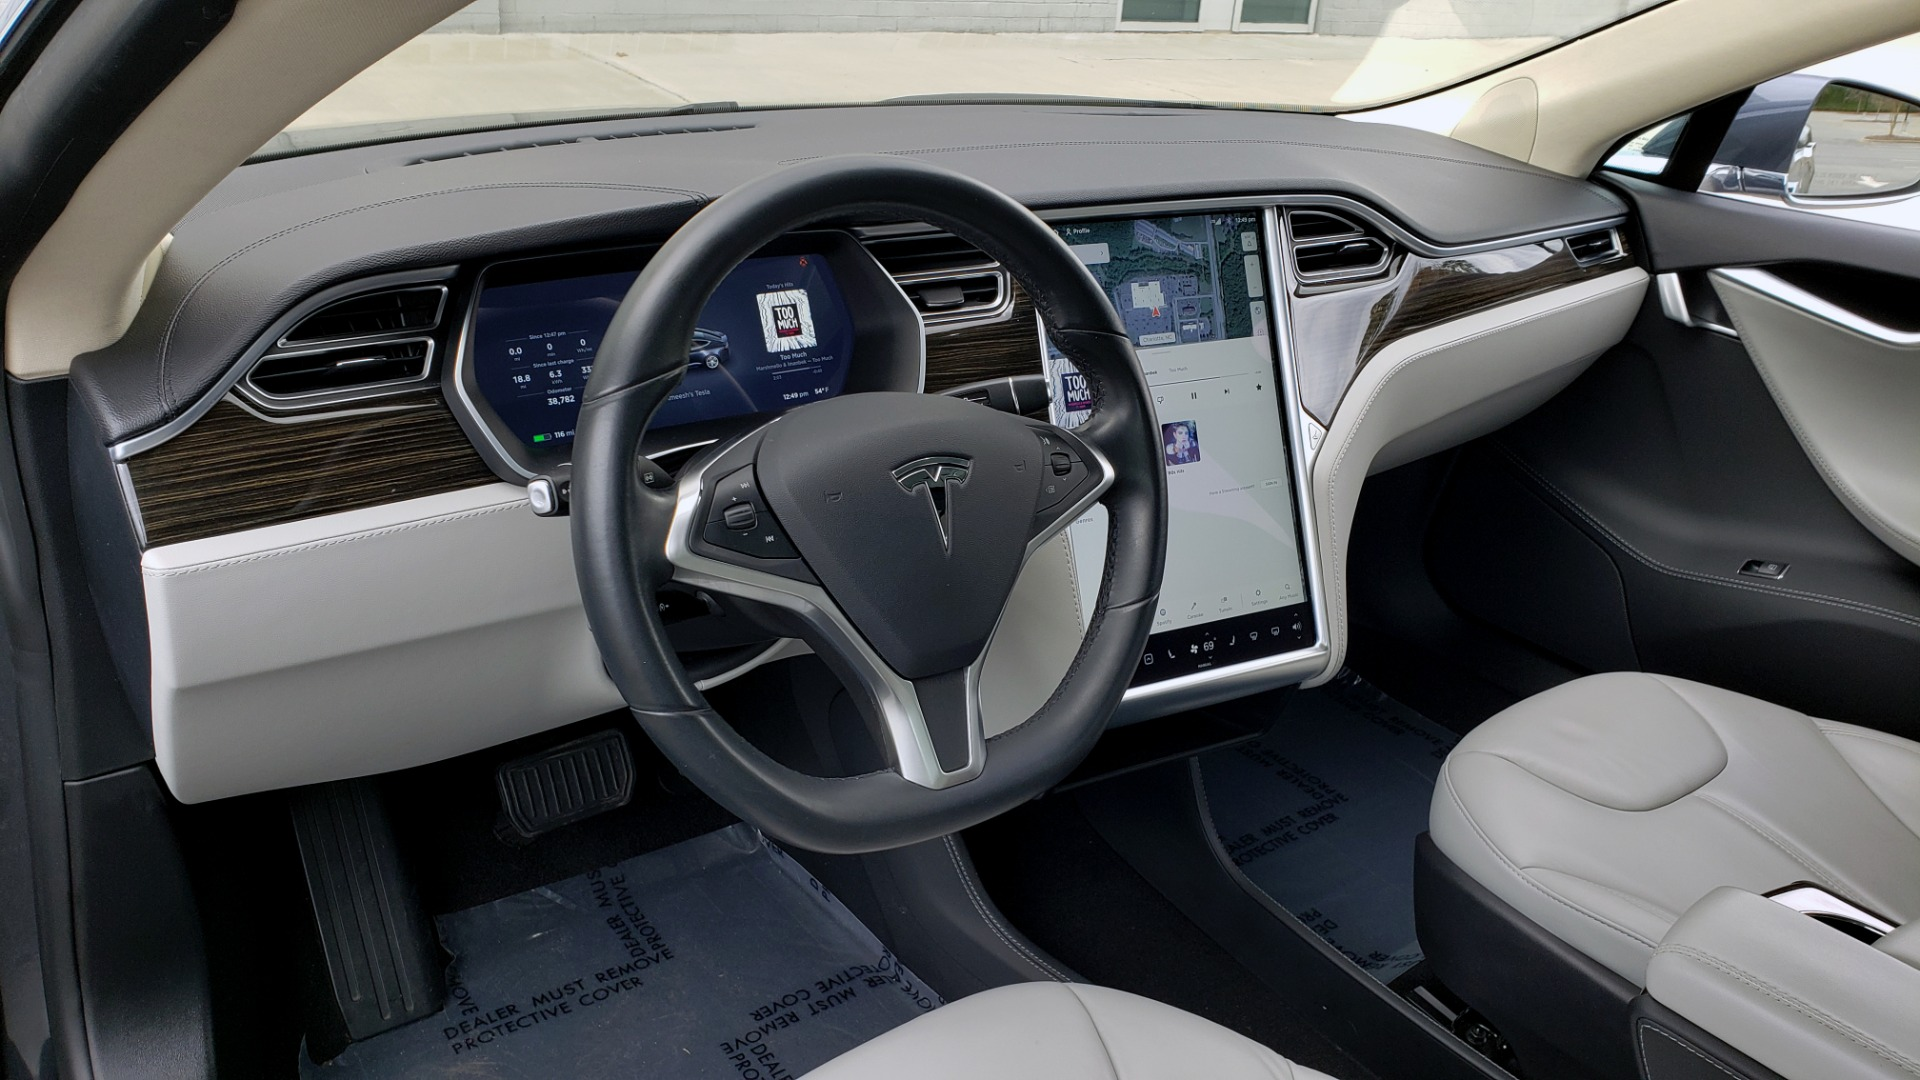 Used 2014 Tesla MODEL S 60 kWh BATTERY / TECH / NAV / SUBZERO / SUNROOF / REARVIEW for sale Sold at Formula Imports in Charlotte NC 28227 32